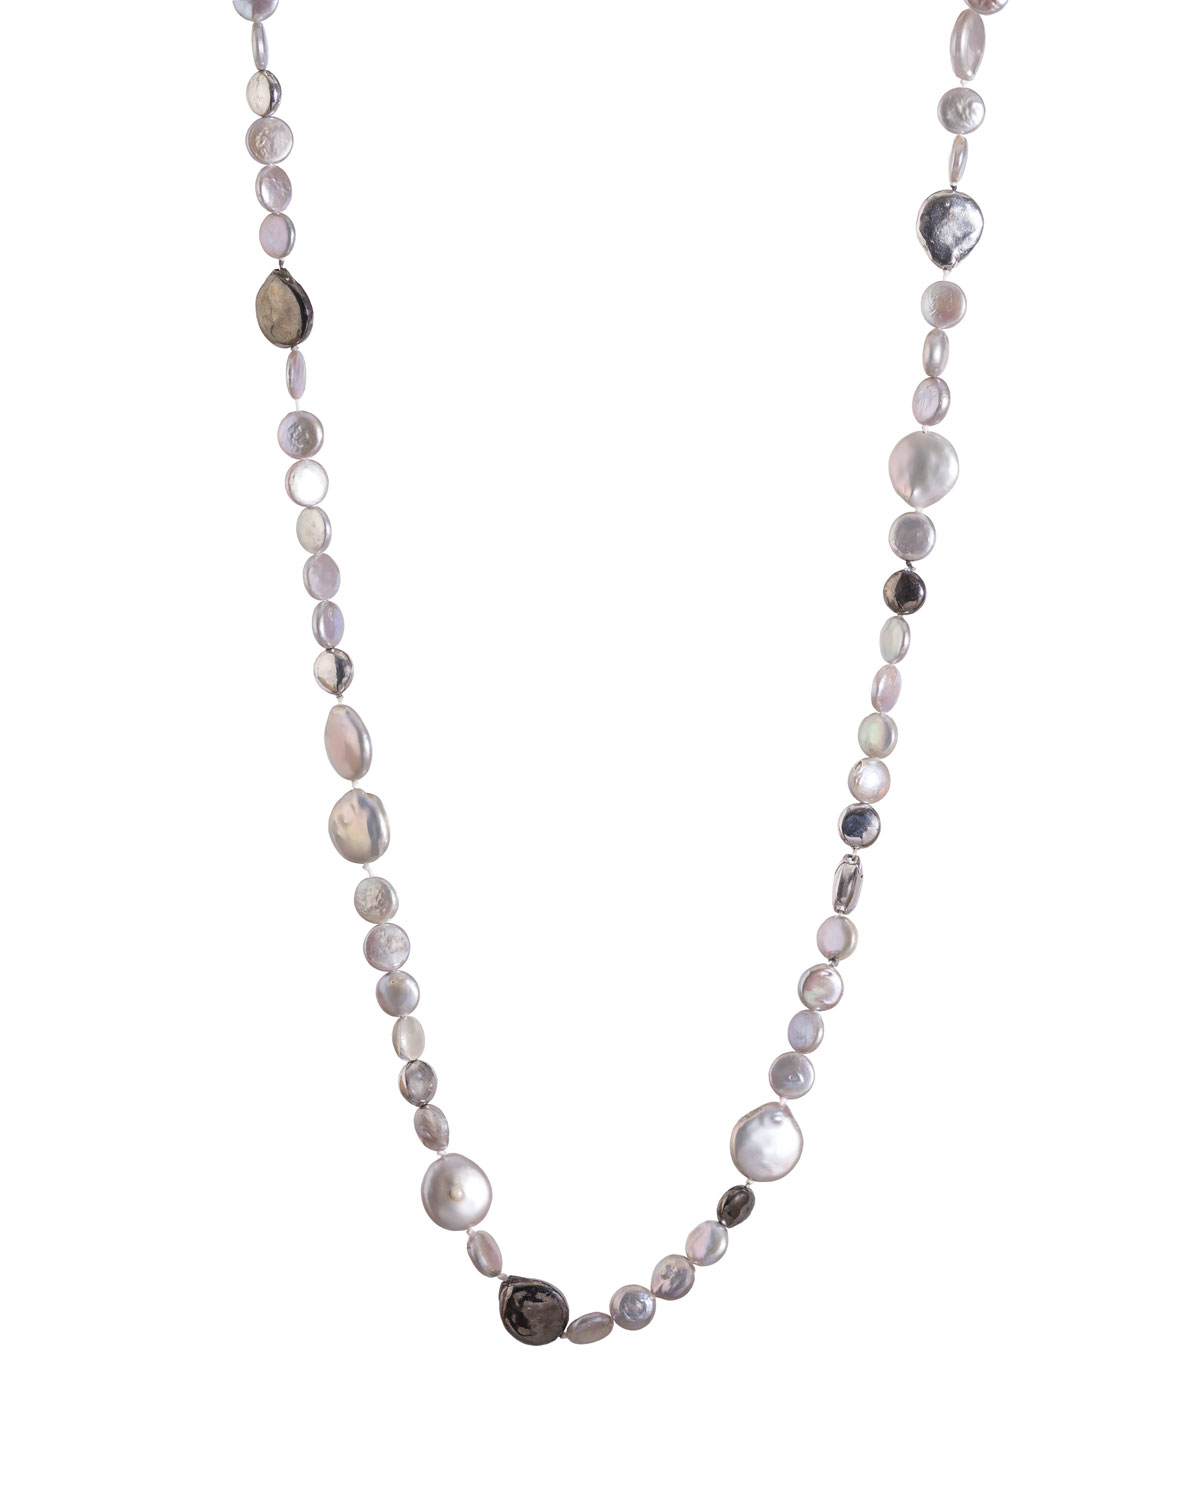 """MICHAEL ARAM MOLTEN LONG NECKLACE W/ GRAY FRESHWATER PEARLS, 32"""""""